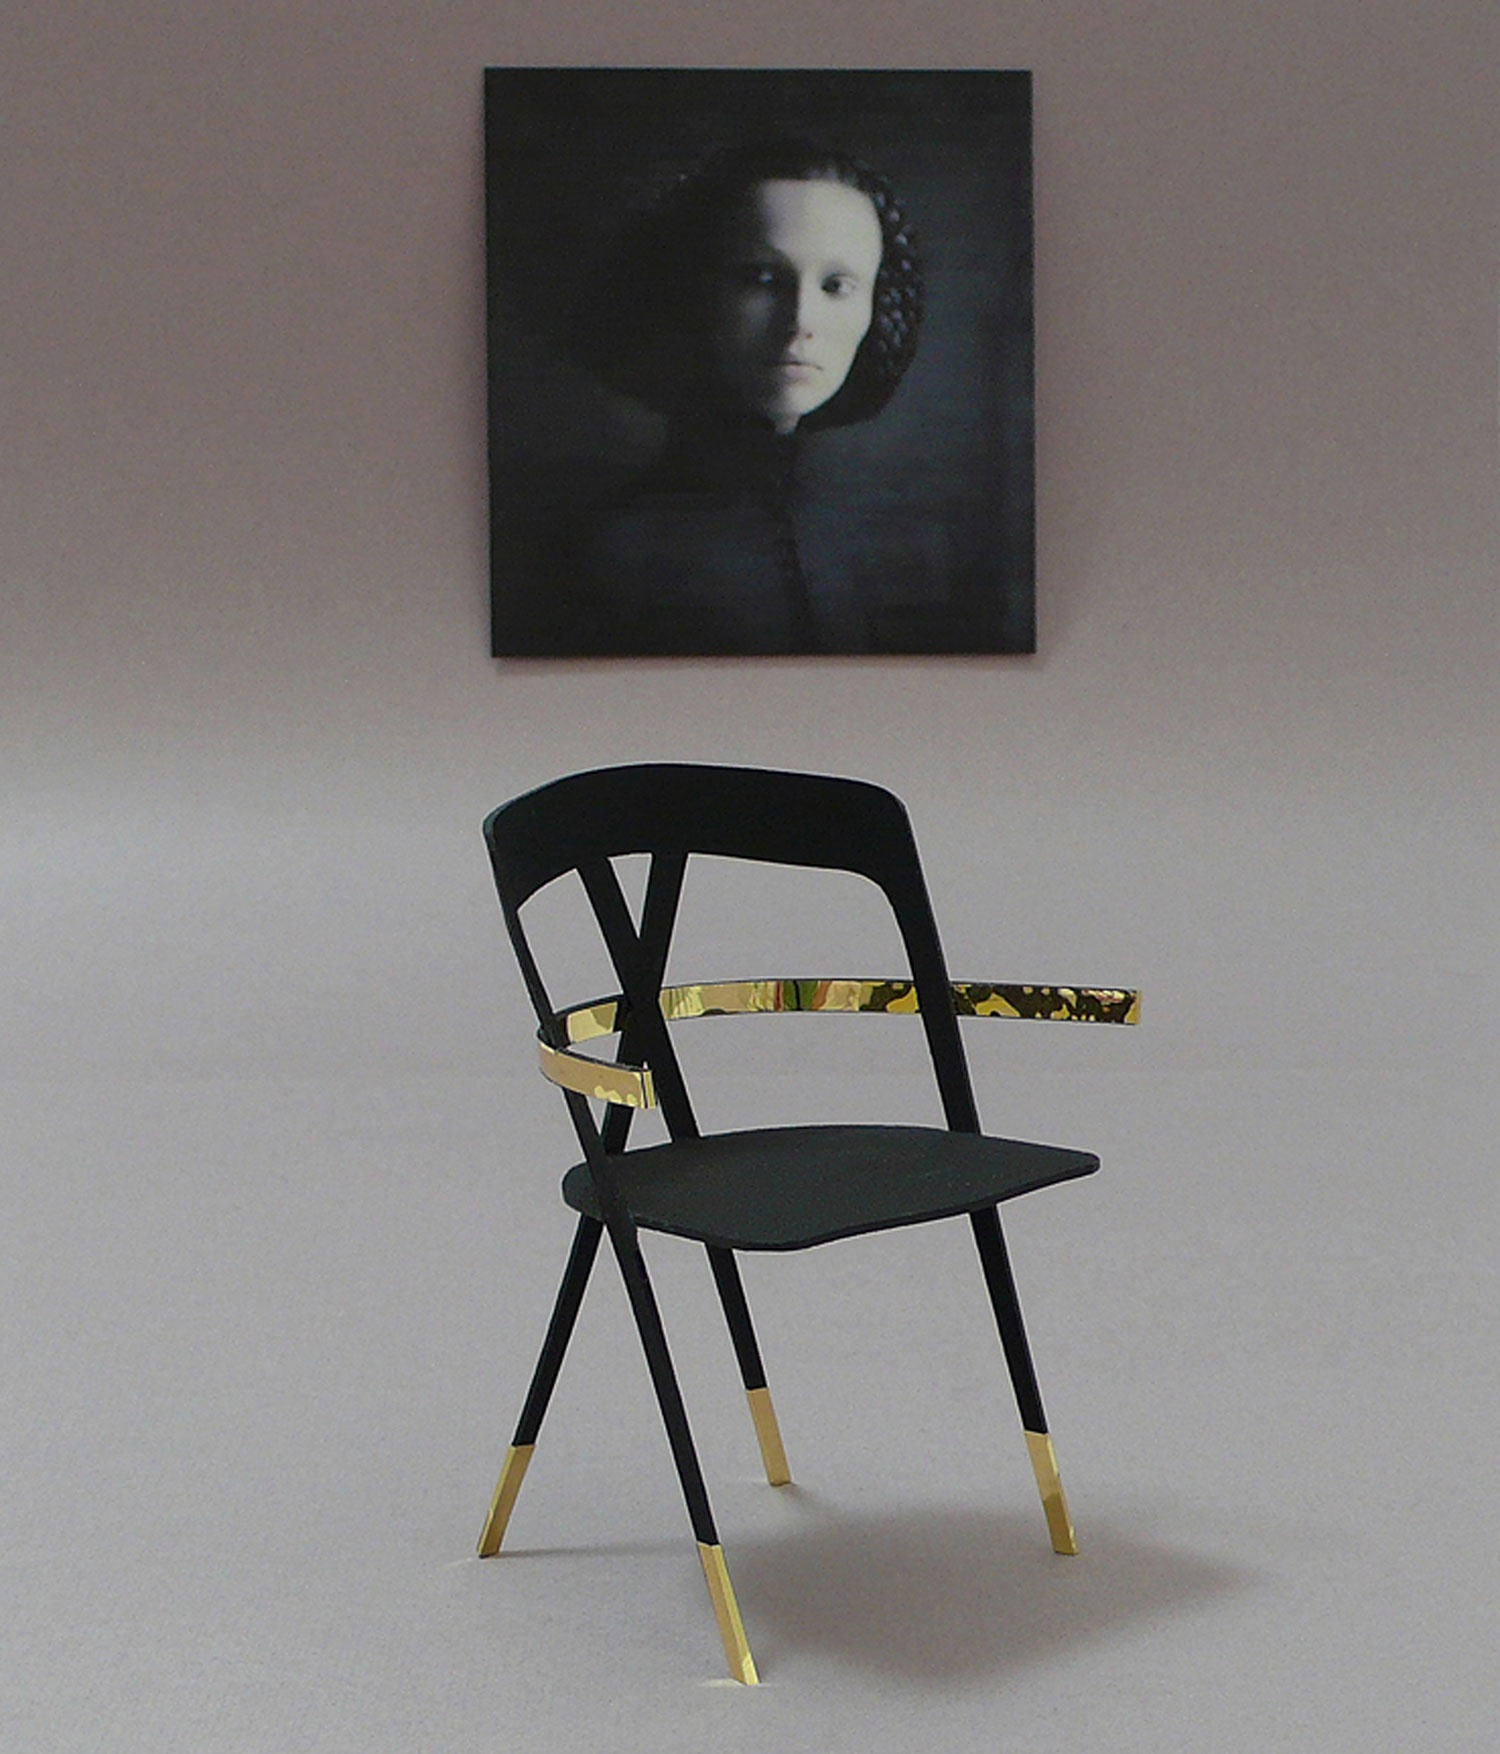 x-federation-chair-by-victor-vetterlein-yellowtrace-06_01